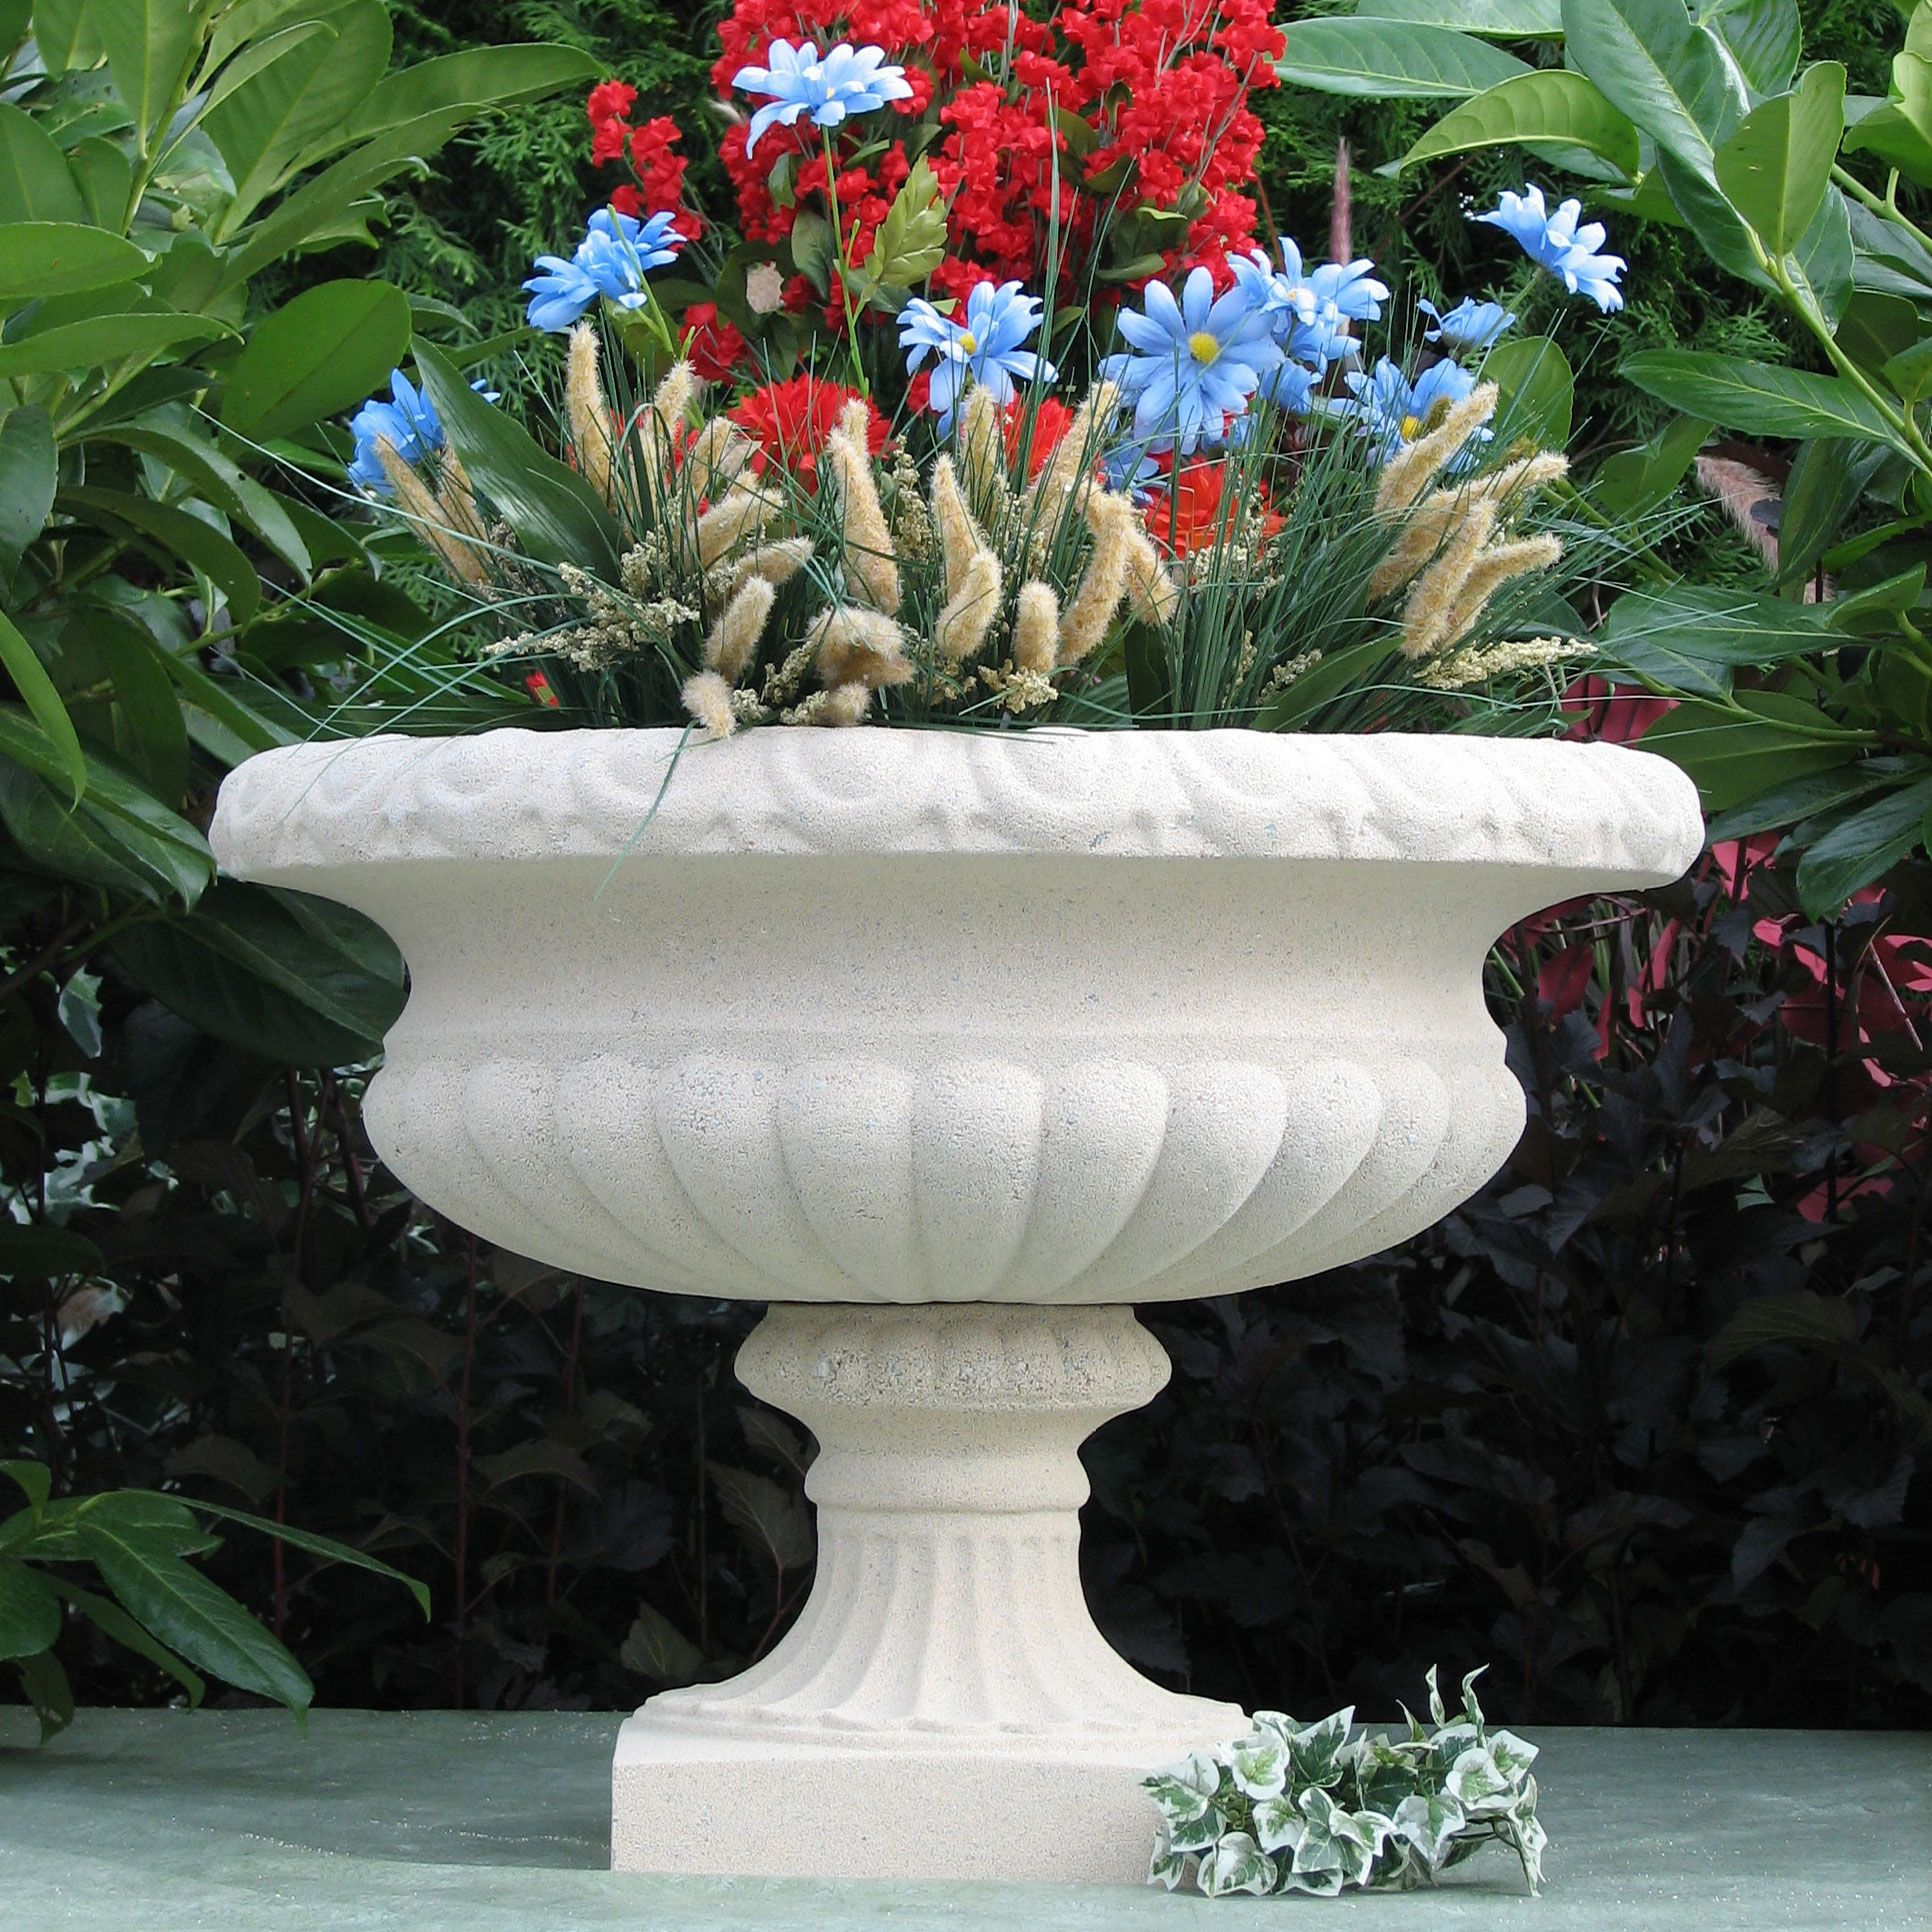 This Gothic Urn Garden Planter Is Stunningly Beautiful With It S Wide Shallow Bowl And Large Flared Opening At The Top It Garden Urns Urn Planters Flower Pots